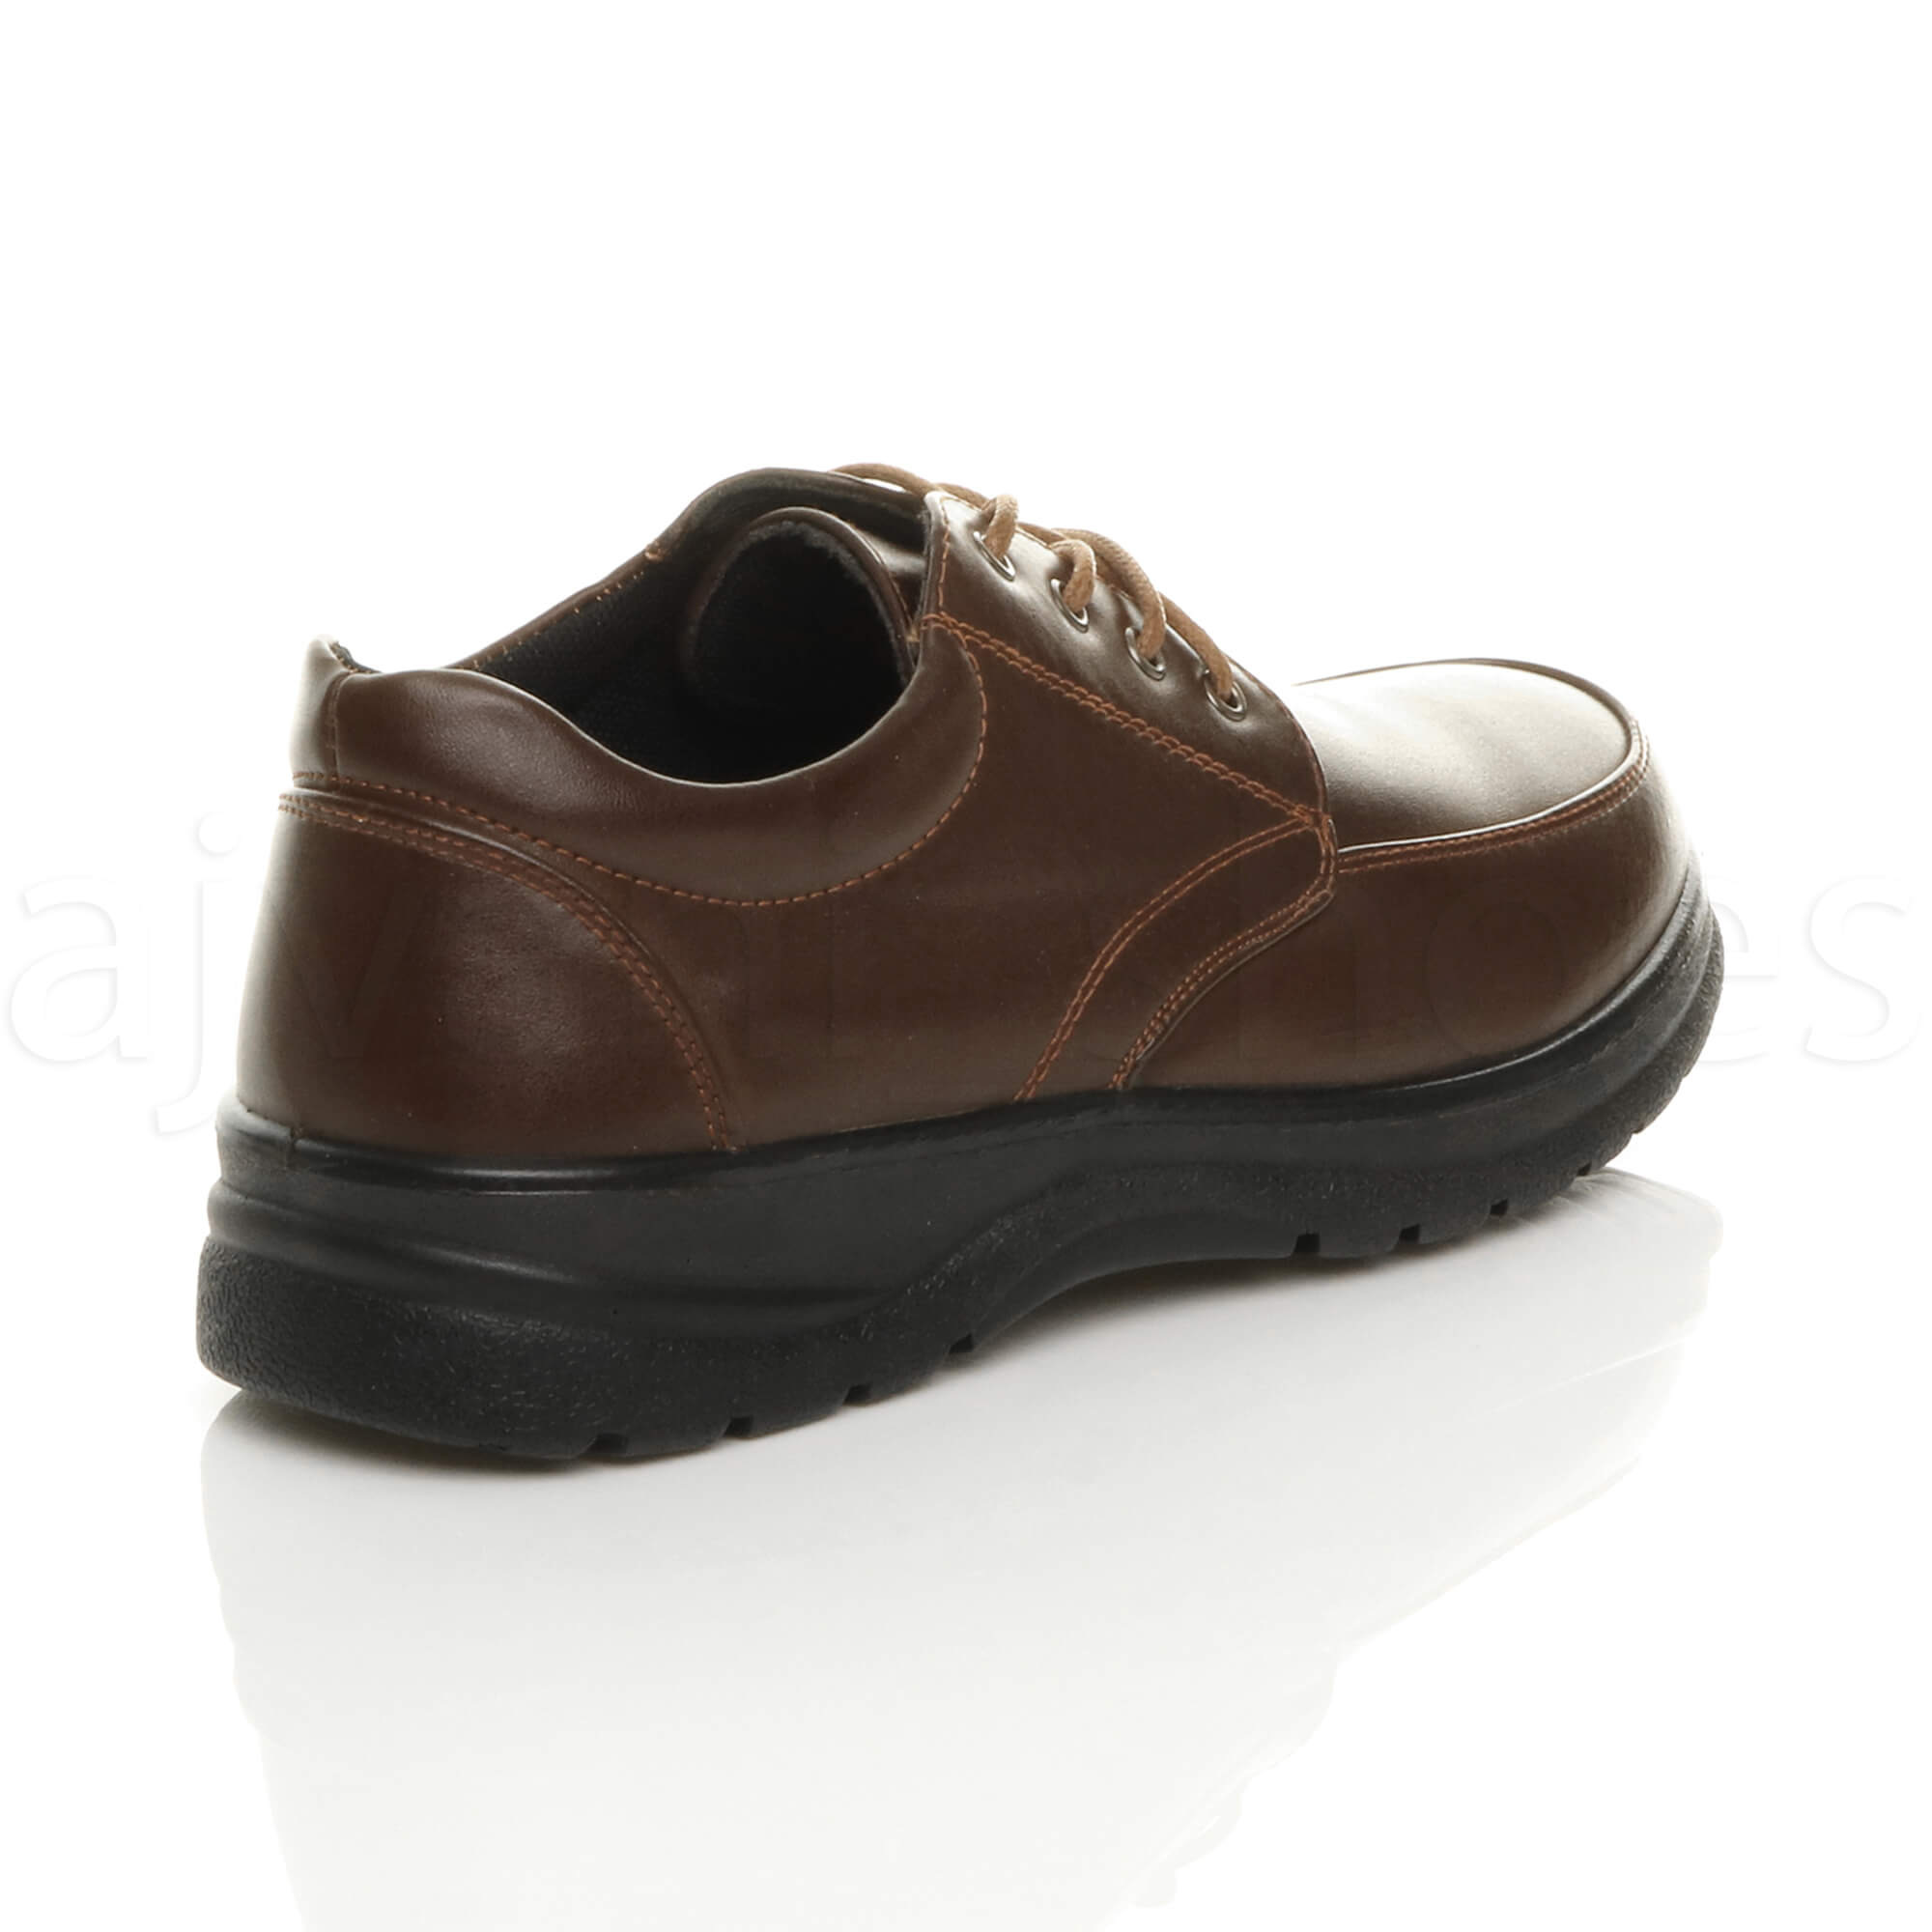 MENS-LACE-UP-CASUAL-MEMORY-FOAM-INSOLE-COMFORT-CUSHIONED-WORK-SHOES-SIZE thumbnail 13